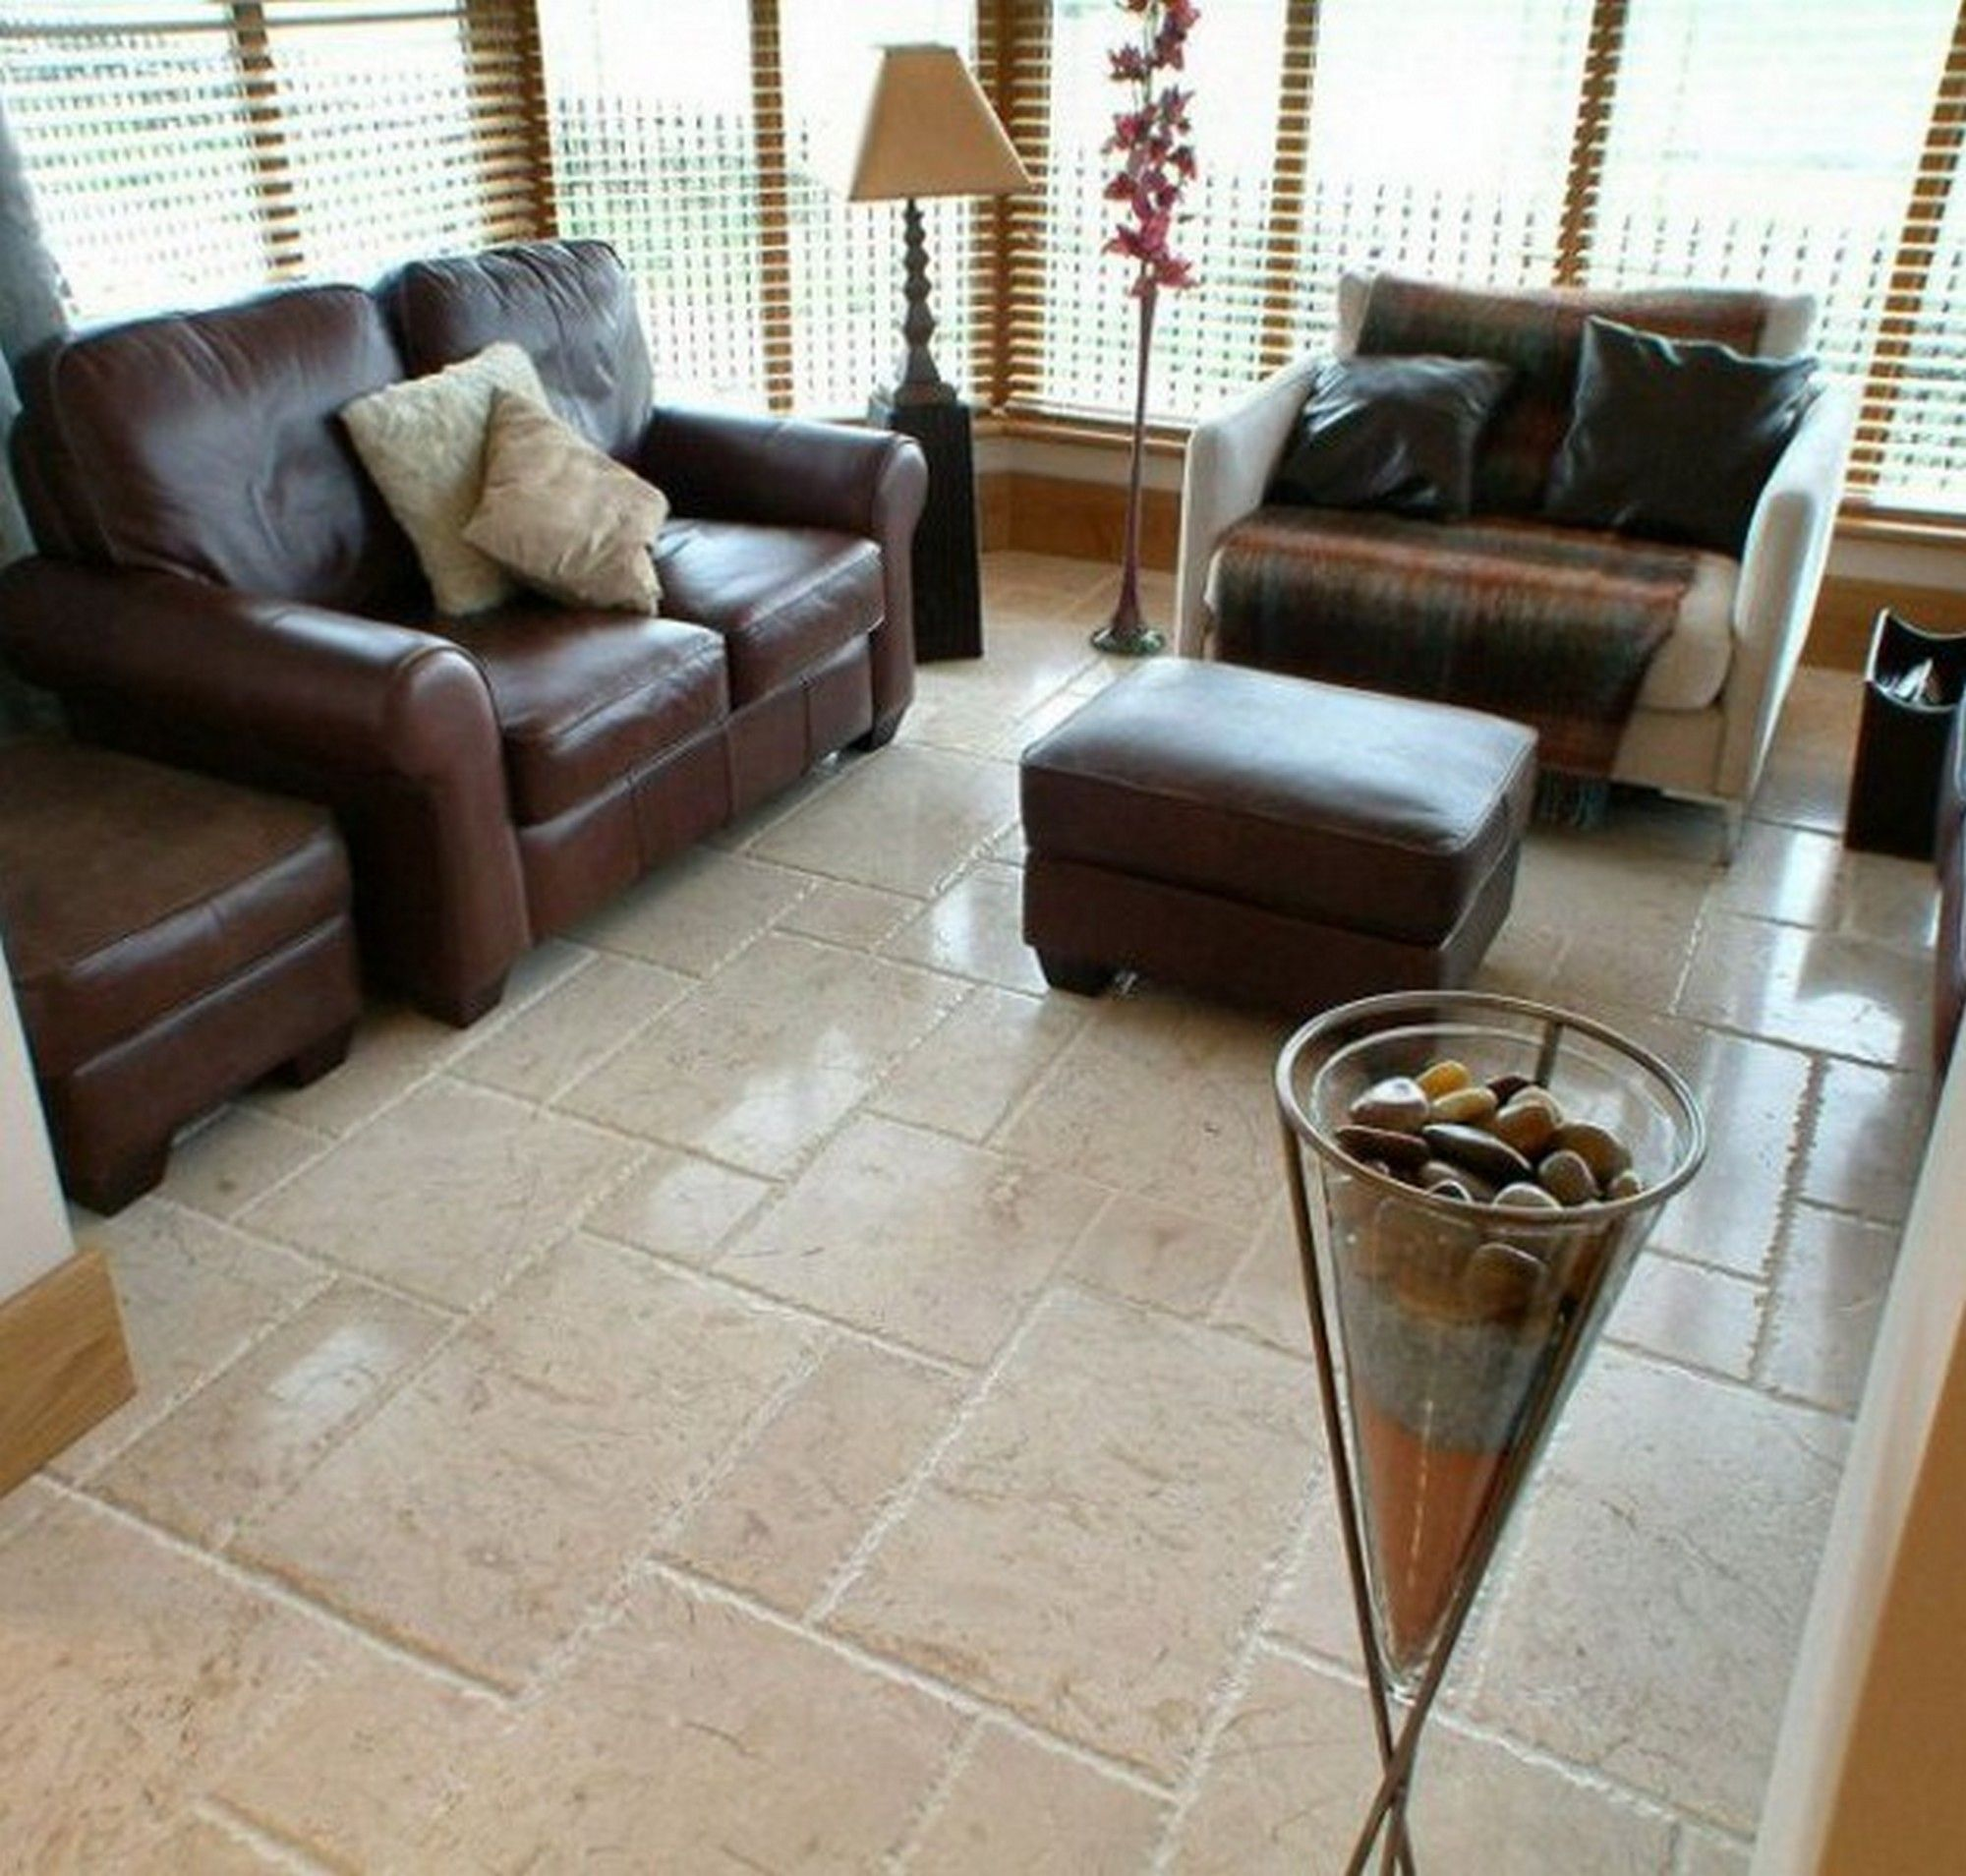 terrific-outoftheordinary-marble-floor-tile-for-living-room.jpg ...